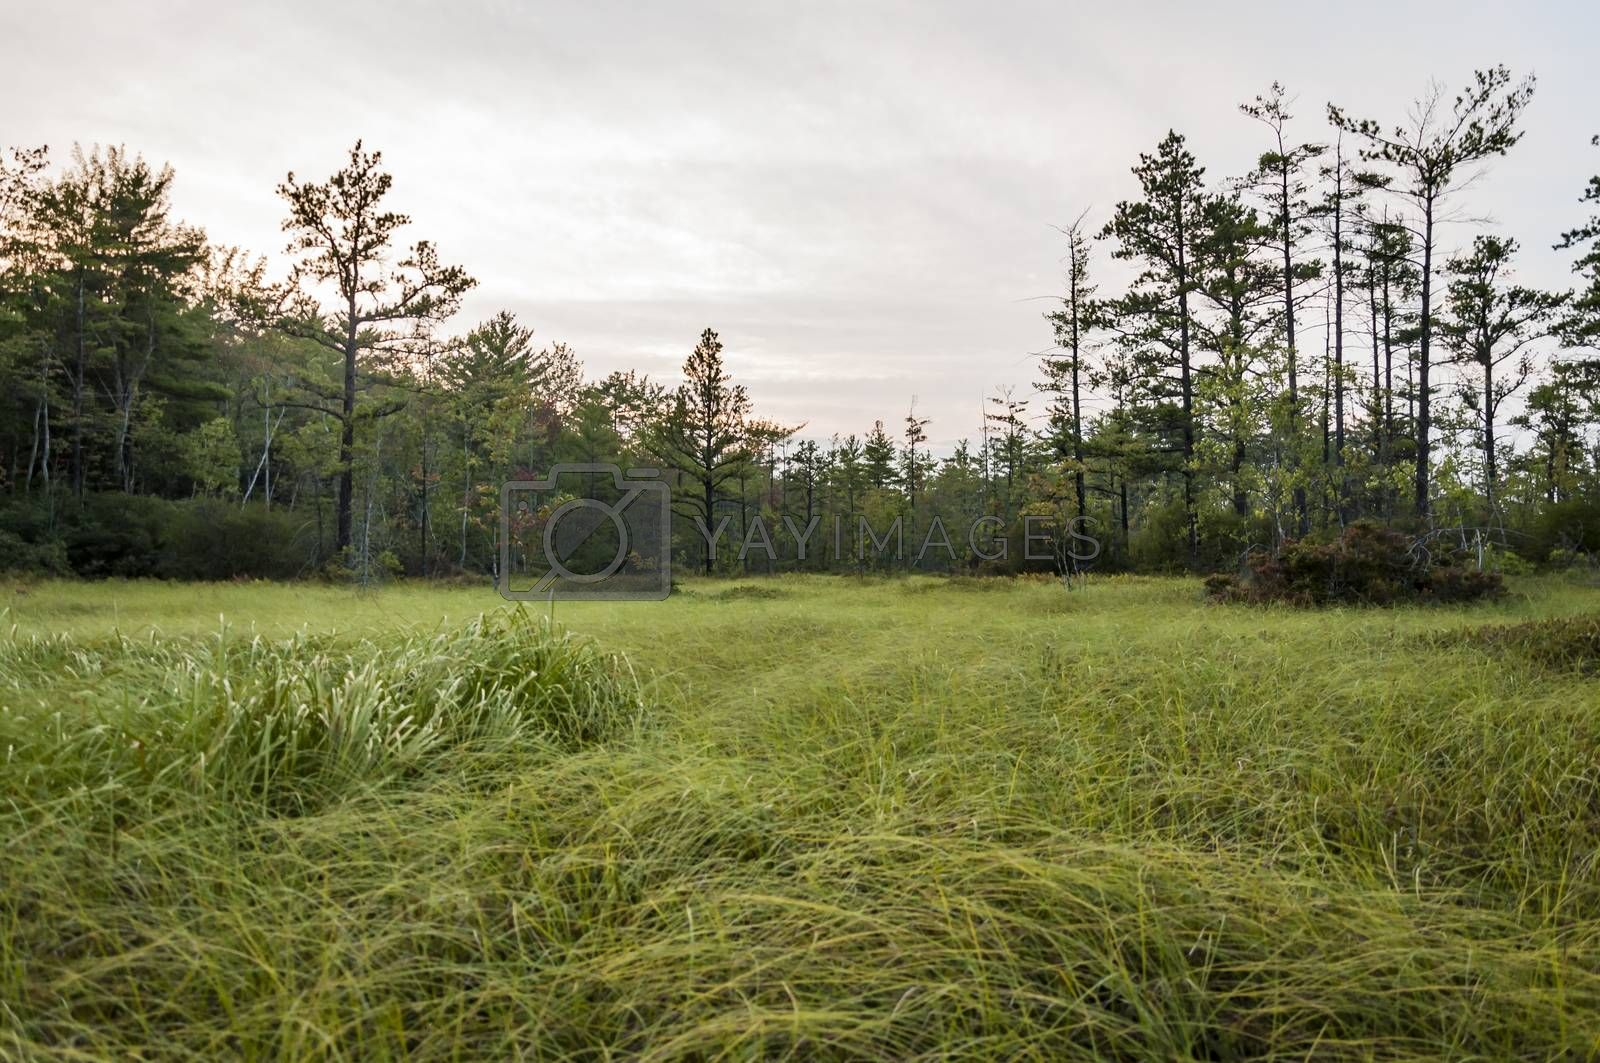 the forest and the landscape in a park in Maine, Usa